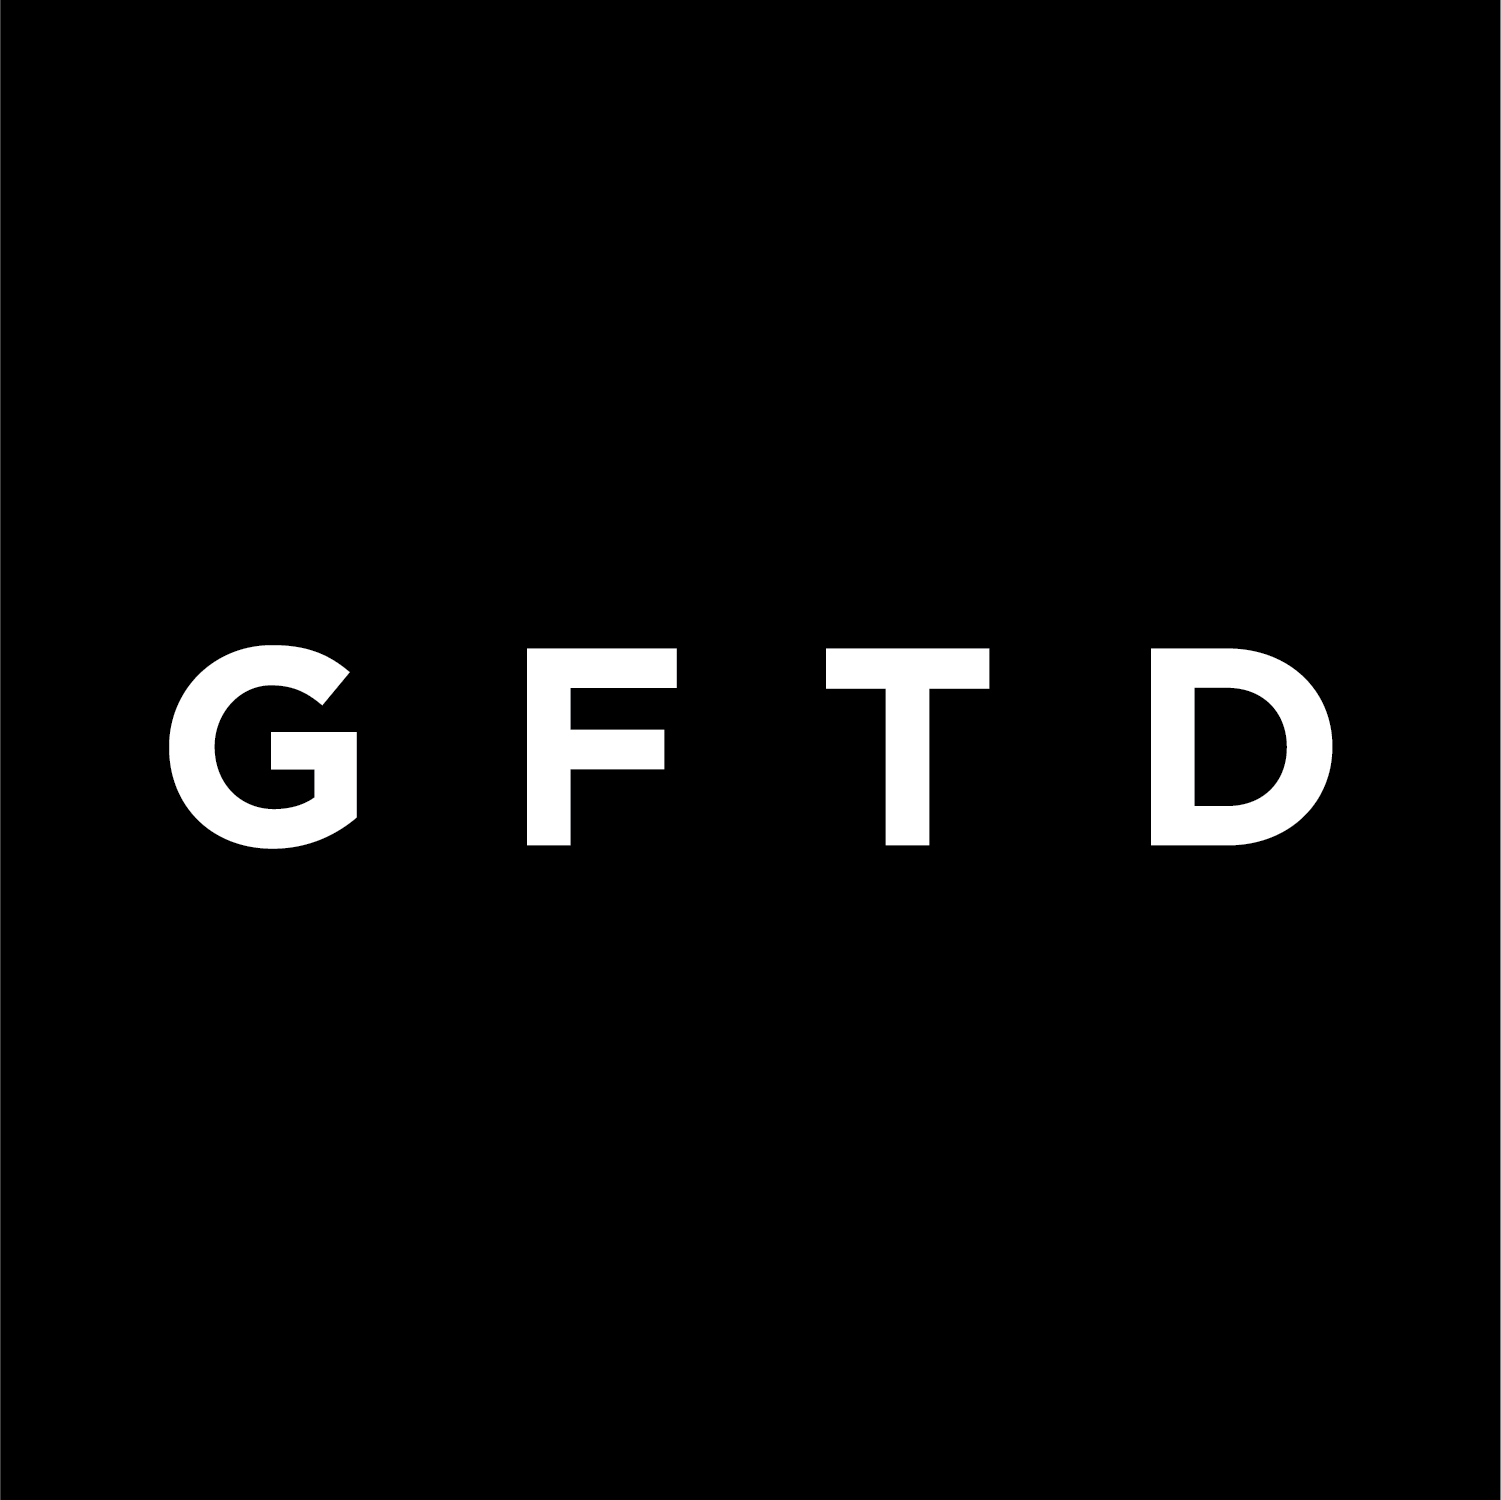 GFTD-02.png